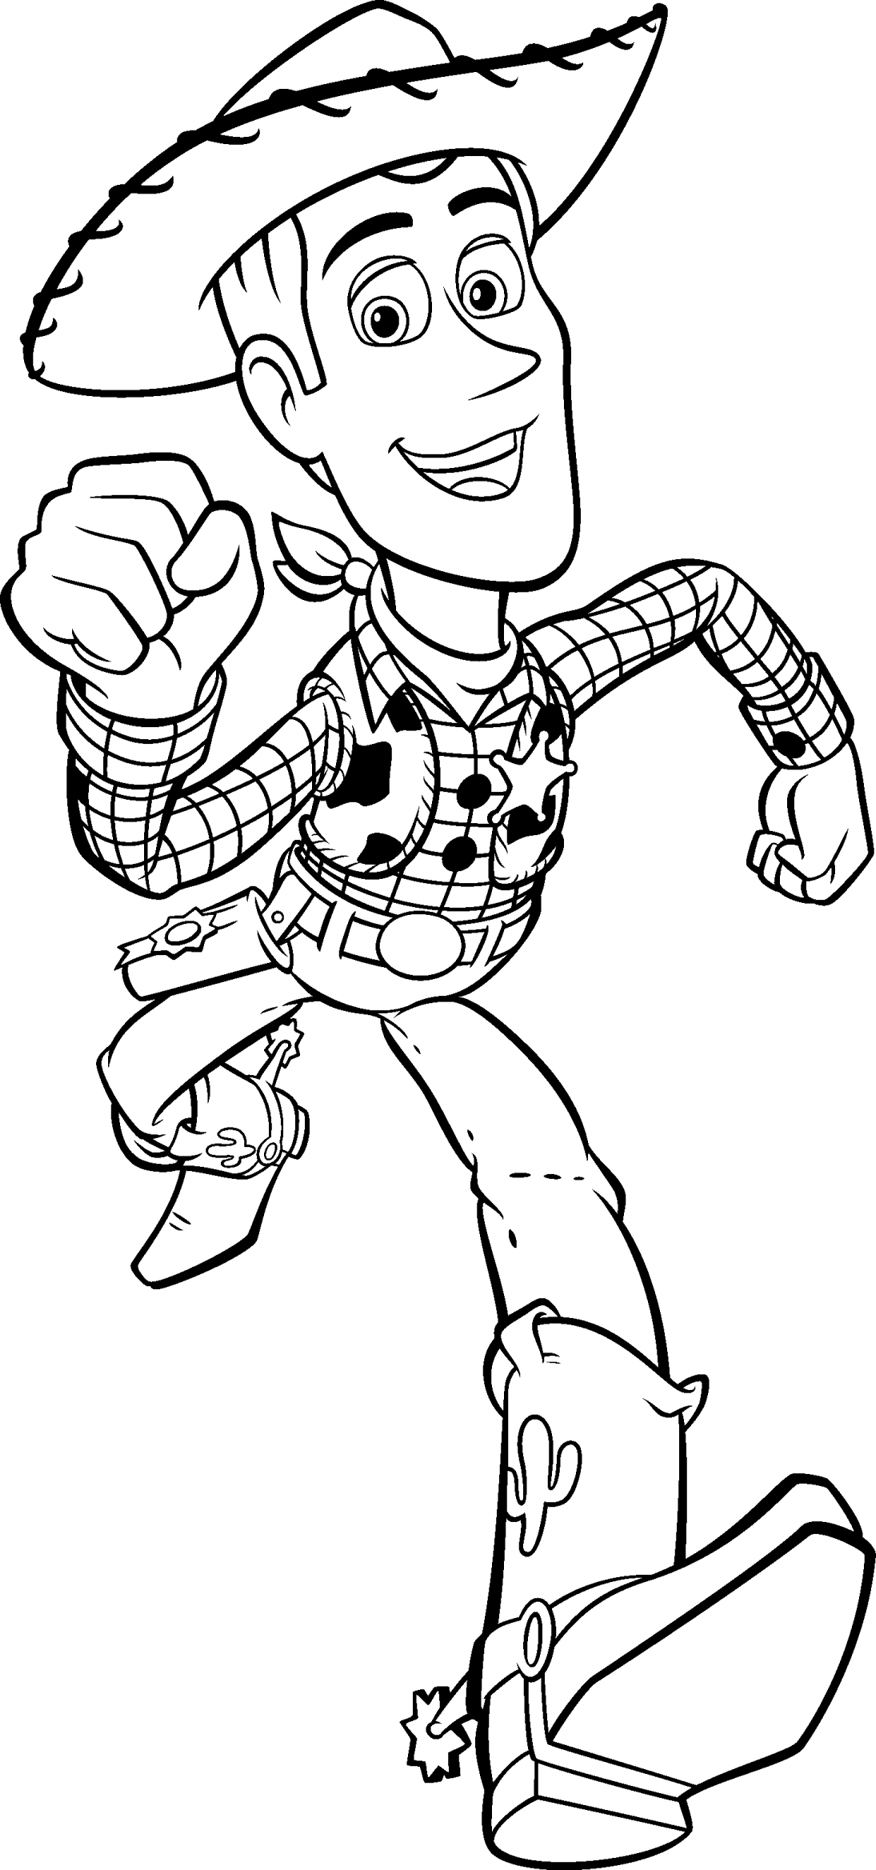 coloring picture color for kids doraemon coloring lesson kids coloring page coloring color kids picture coloring for